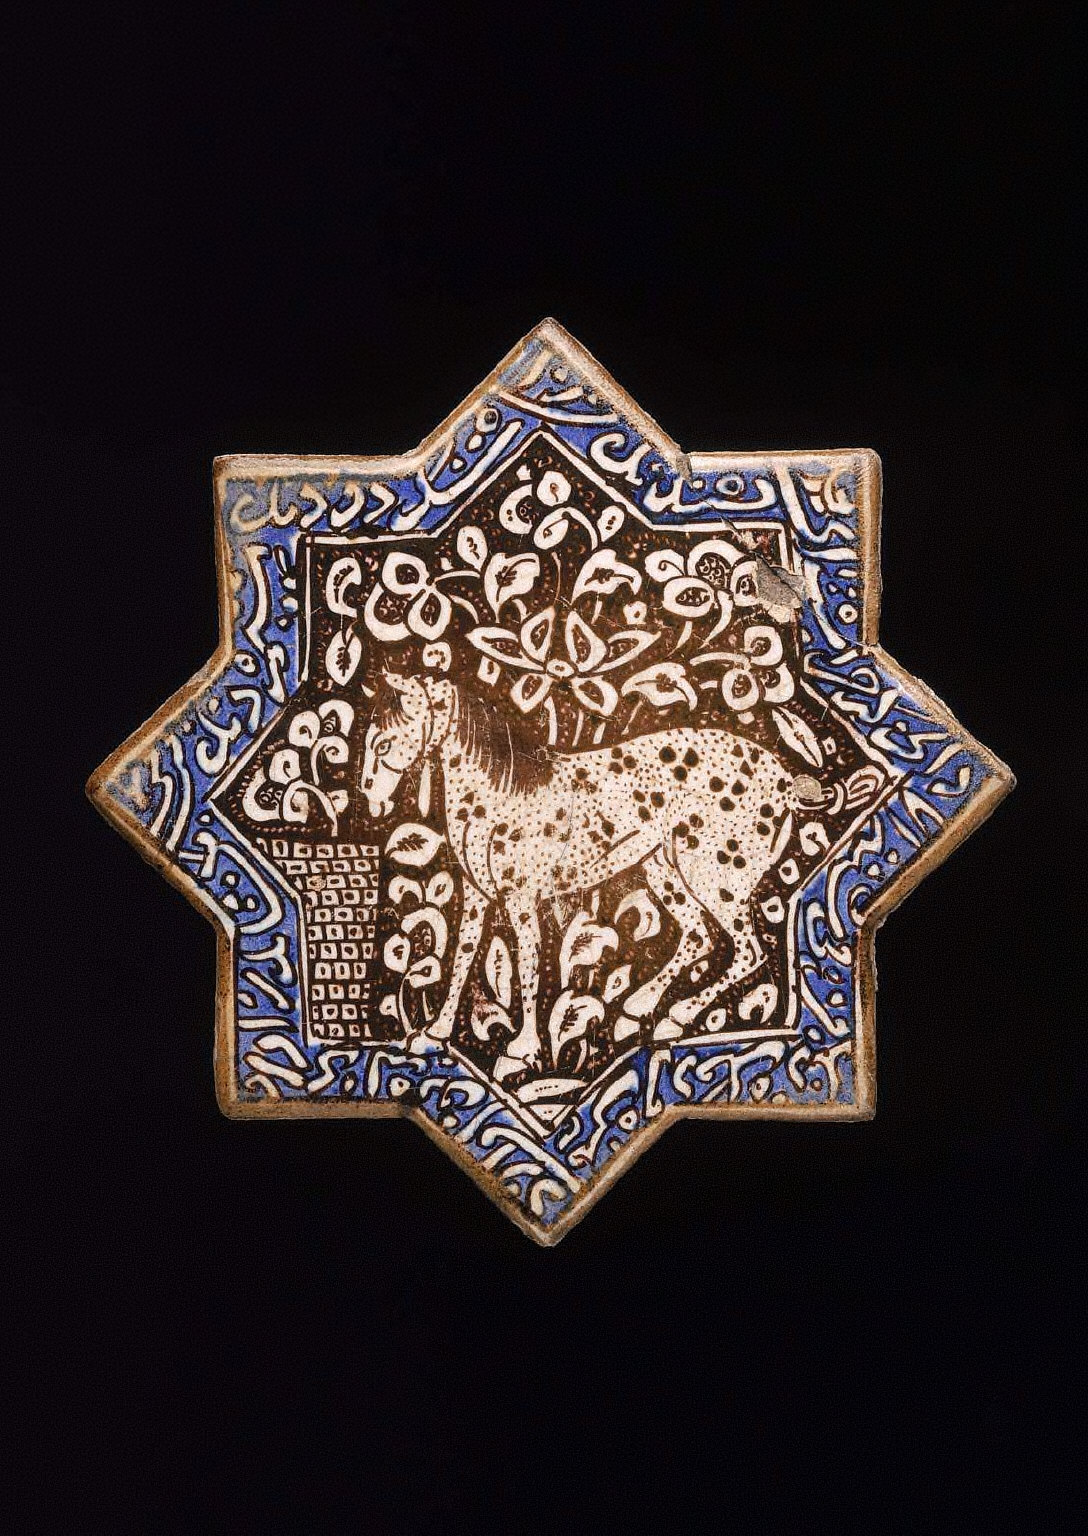 Star tile with horse